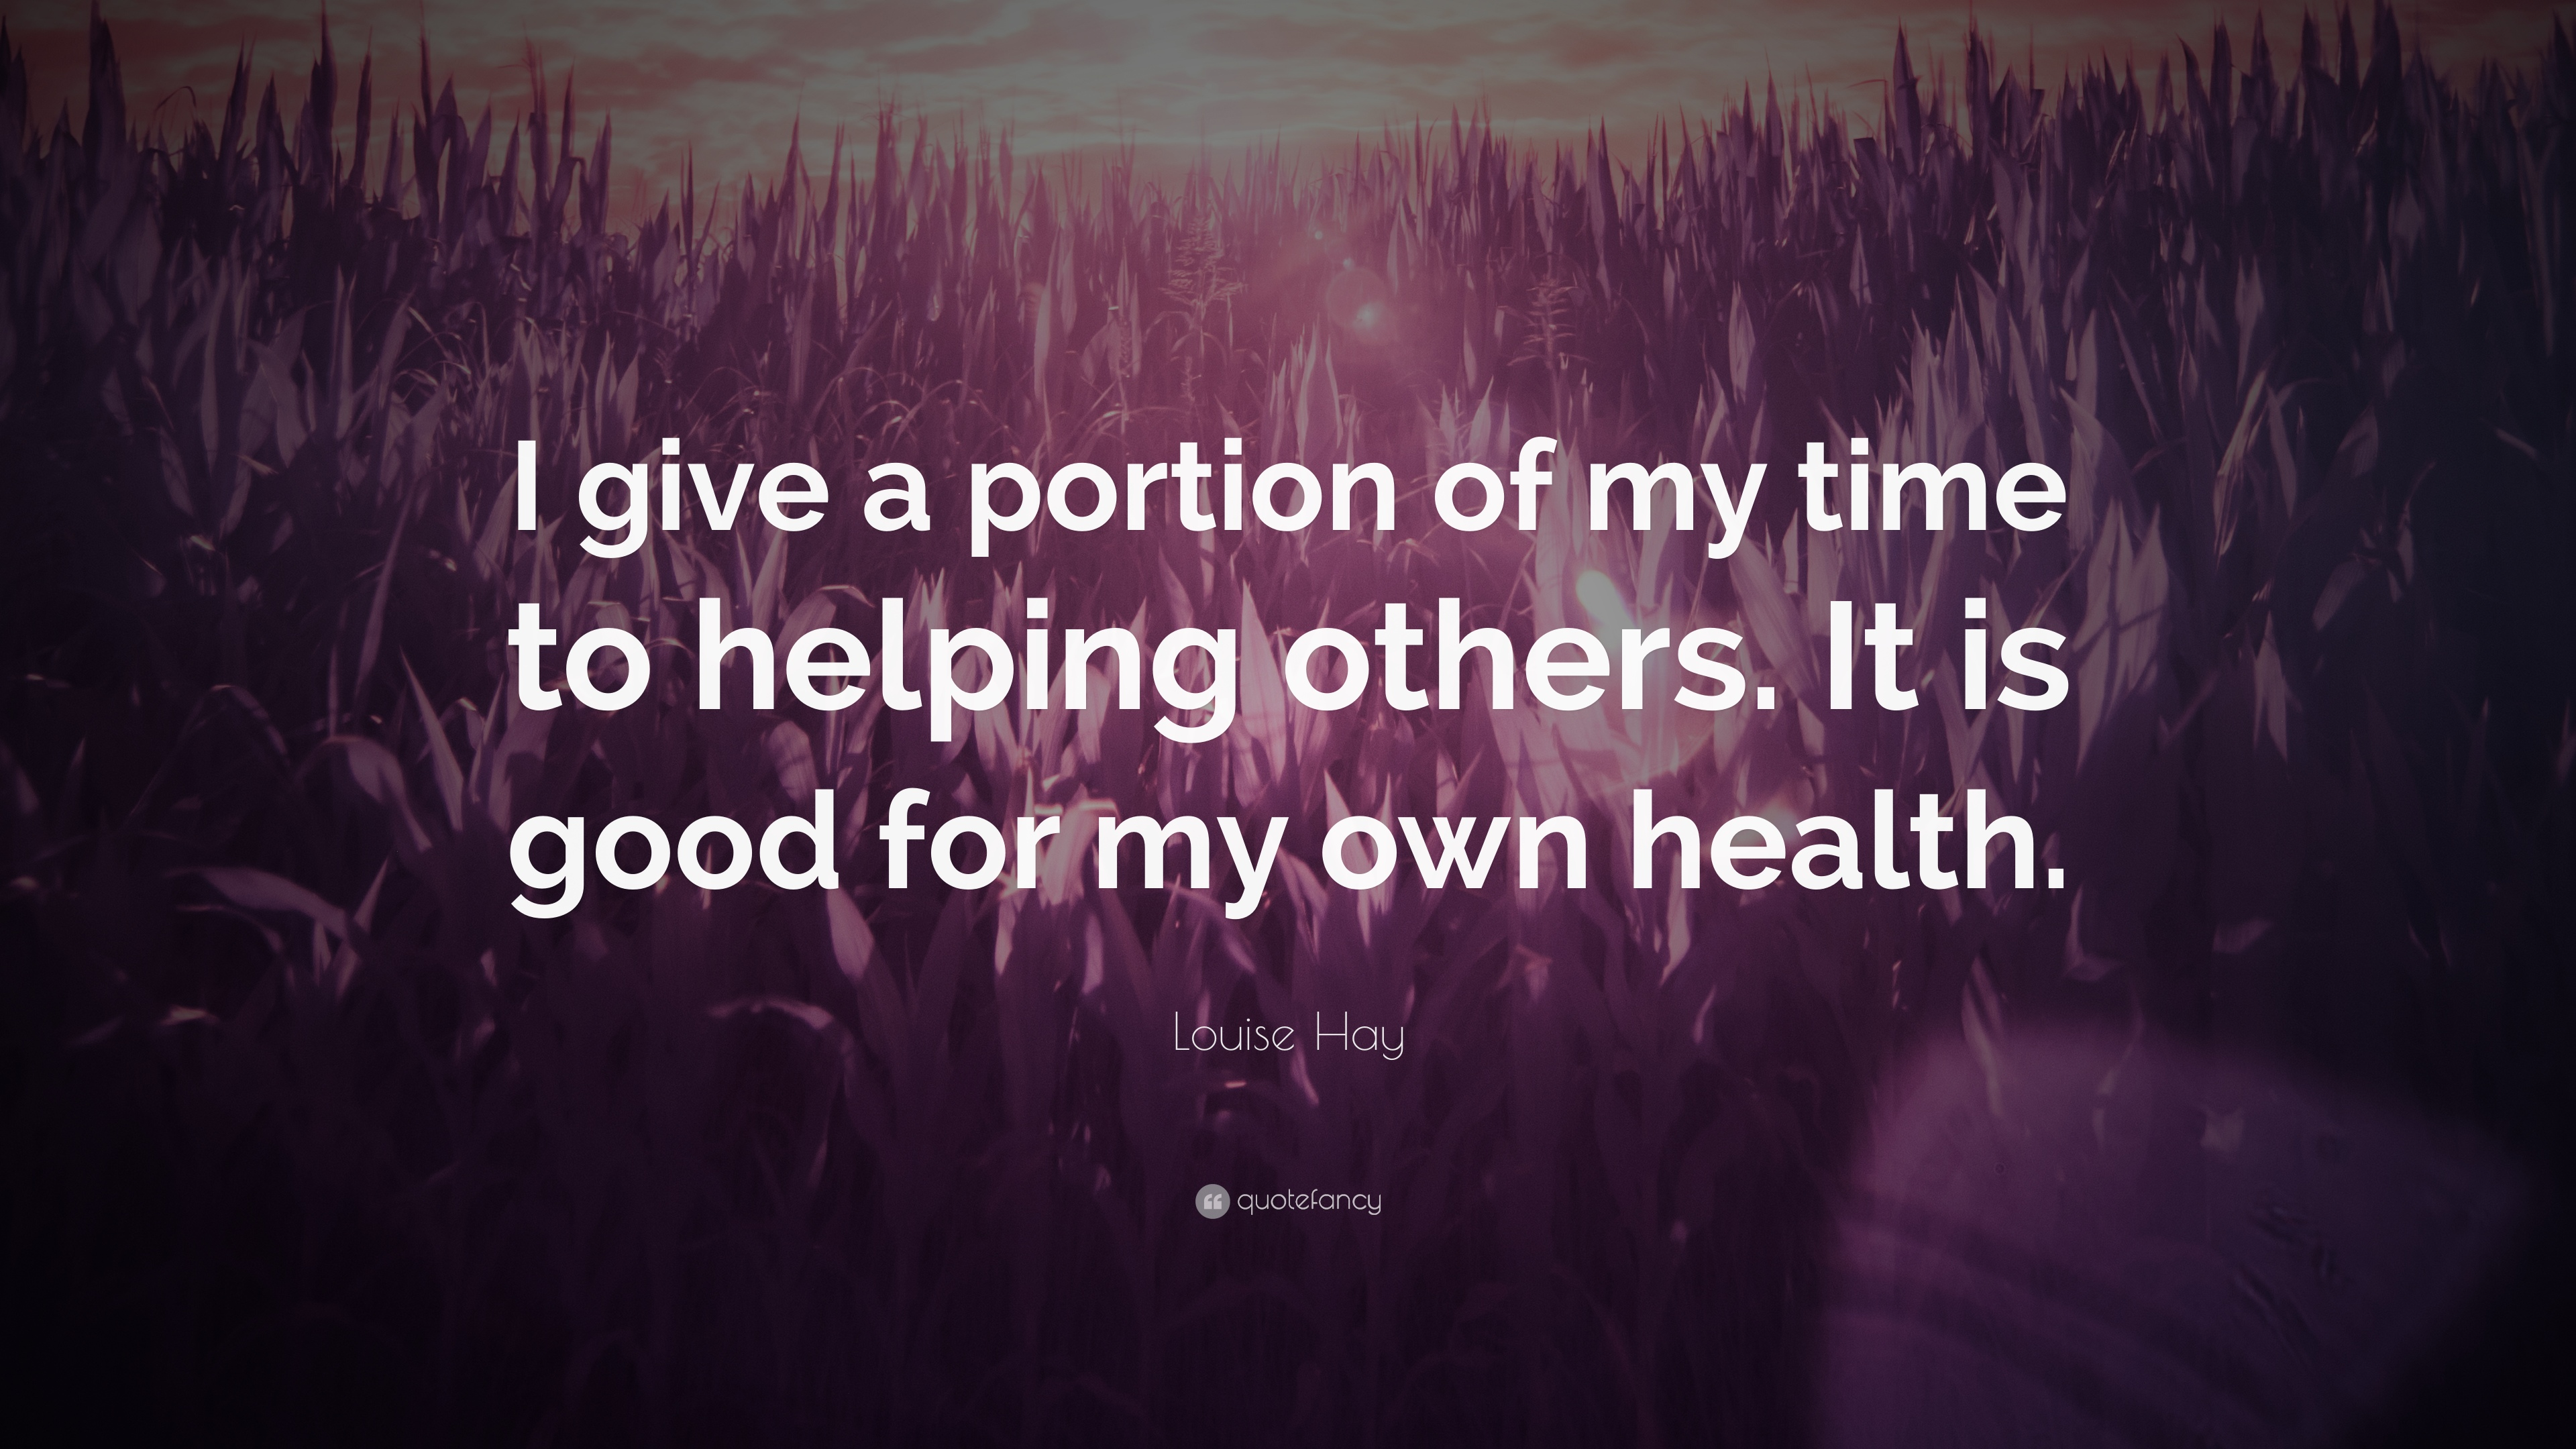 Louise Hay Quote: U201cI Give A Portion Of My Time To Helping Others.